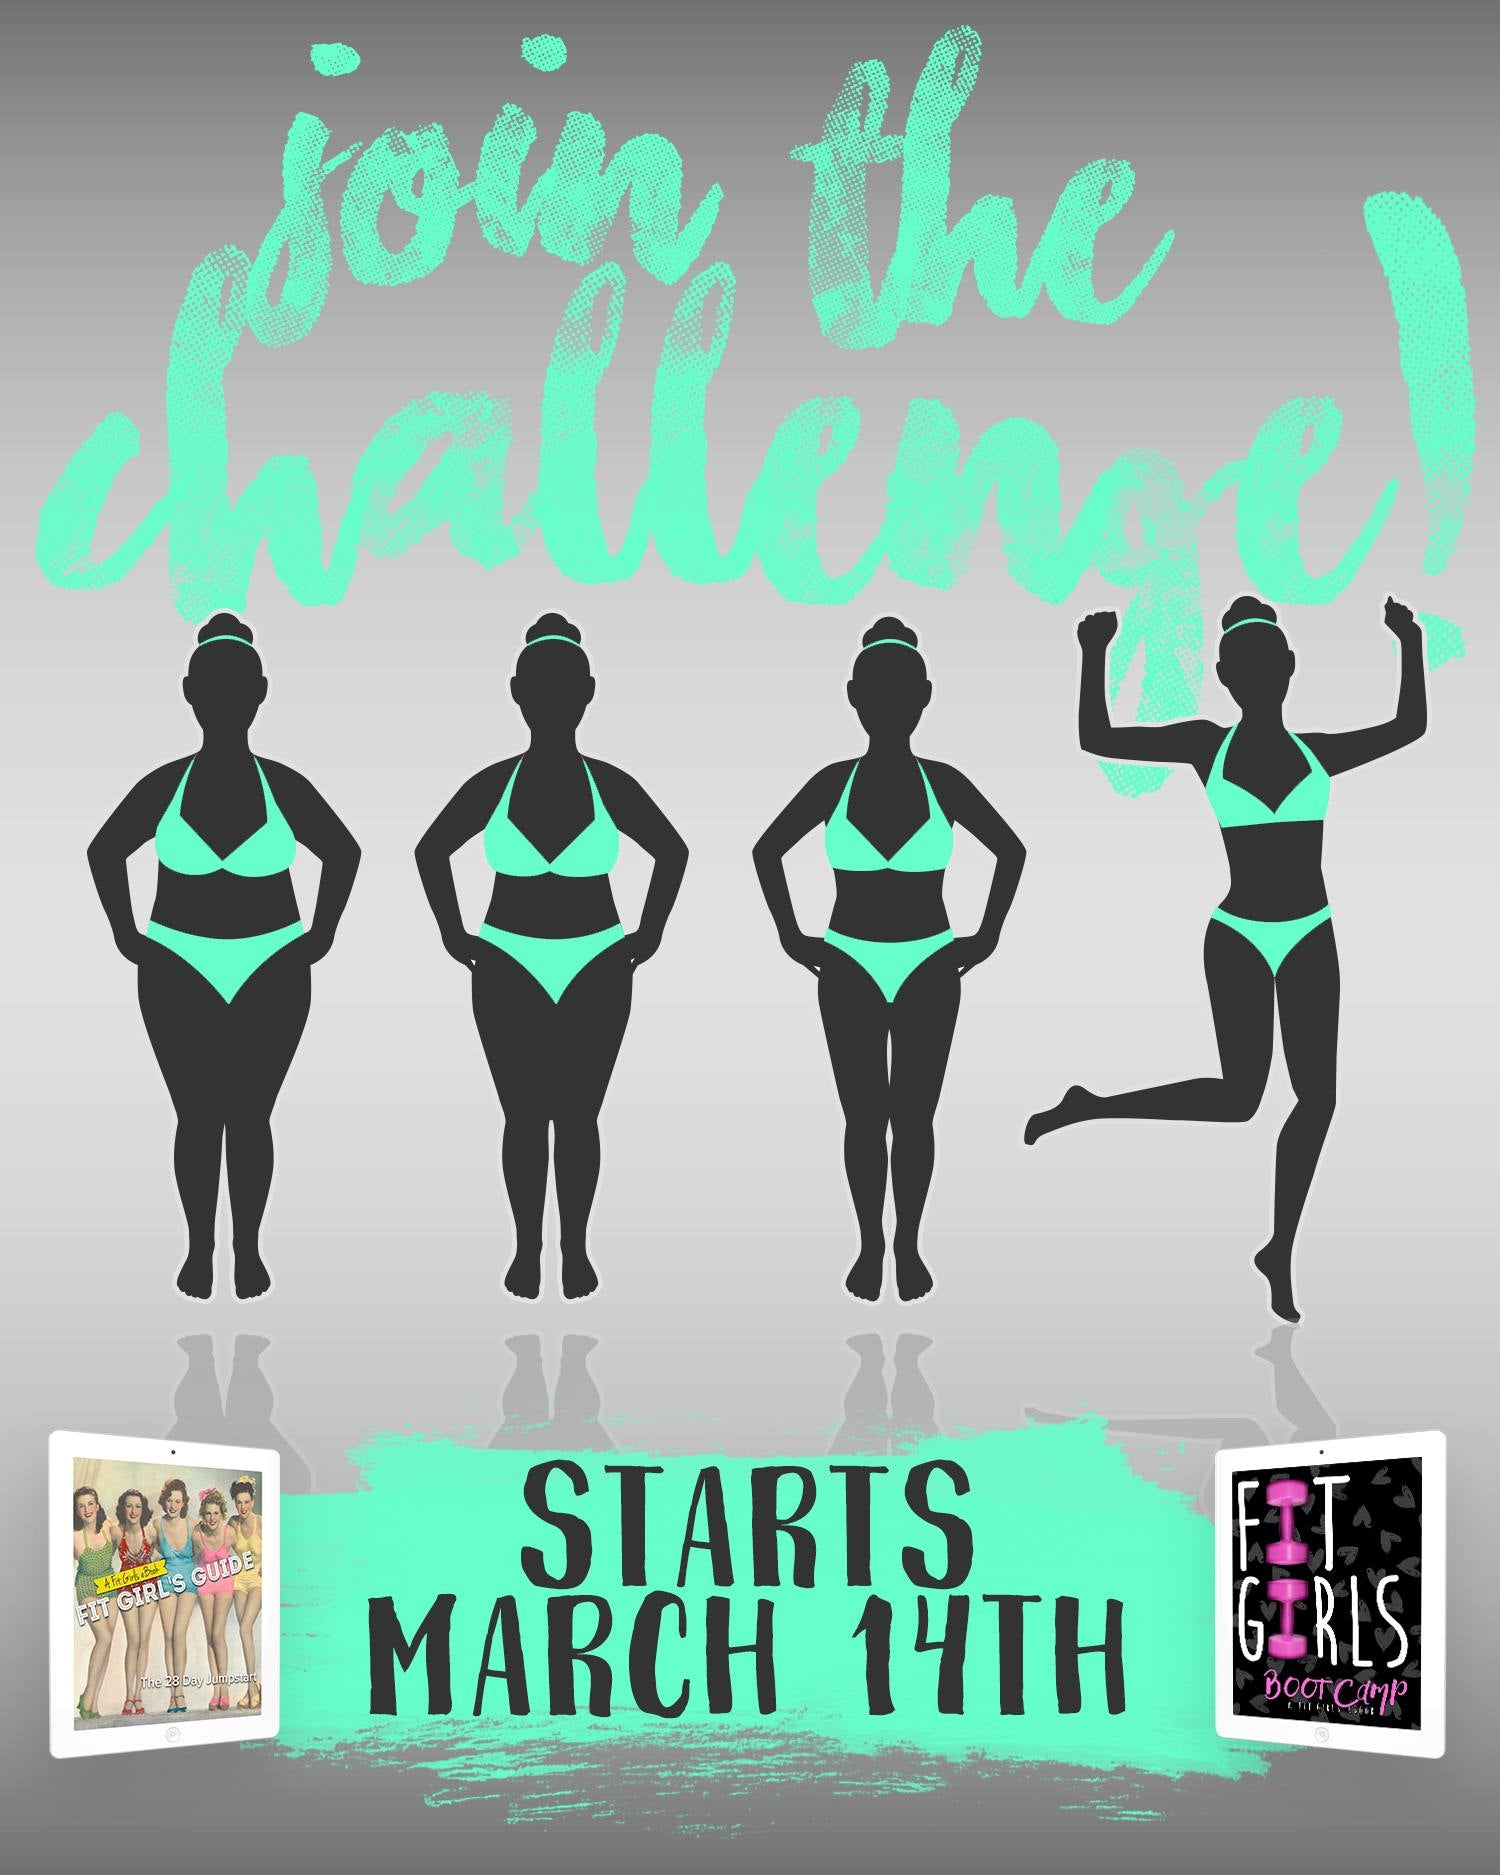 Fit Girls Guide - March 14th Challenge